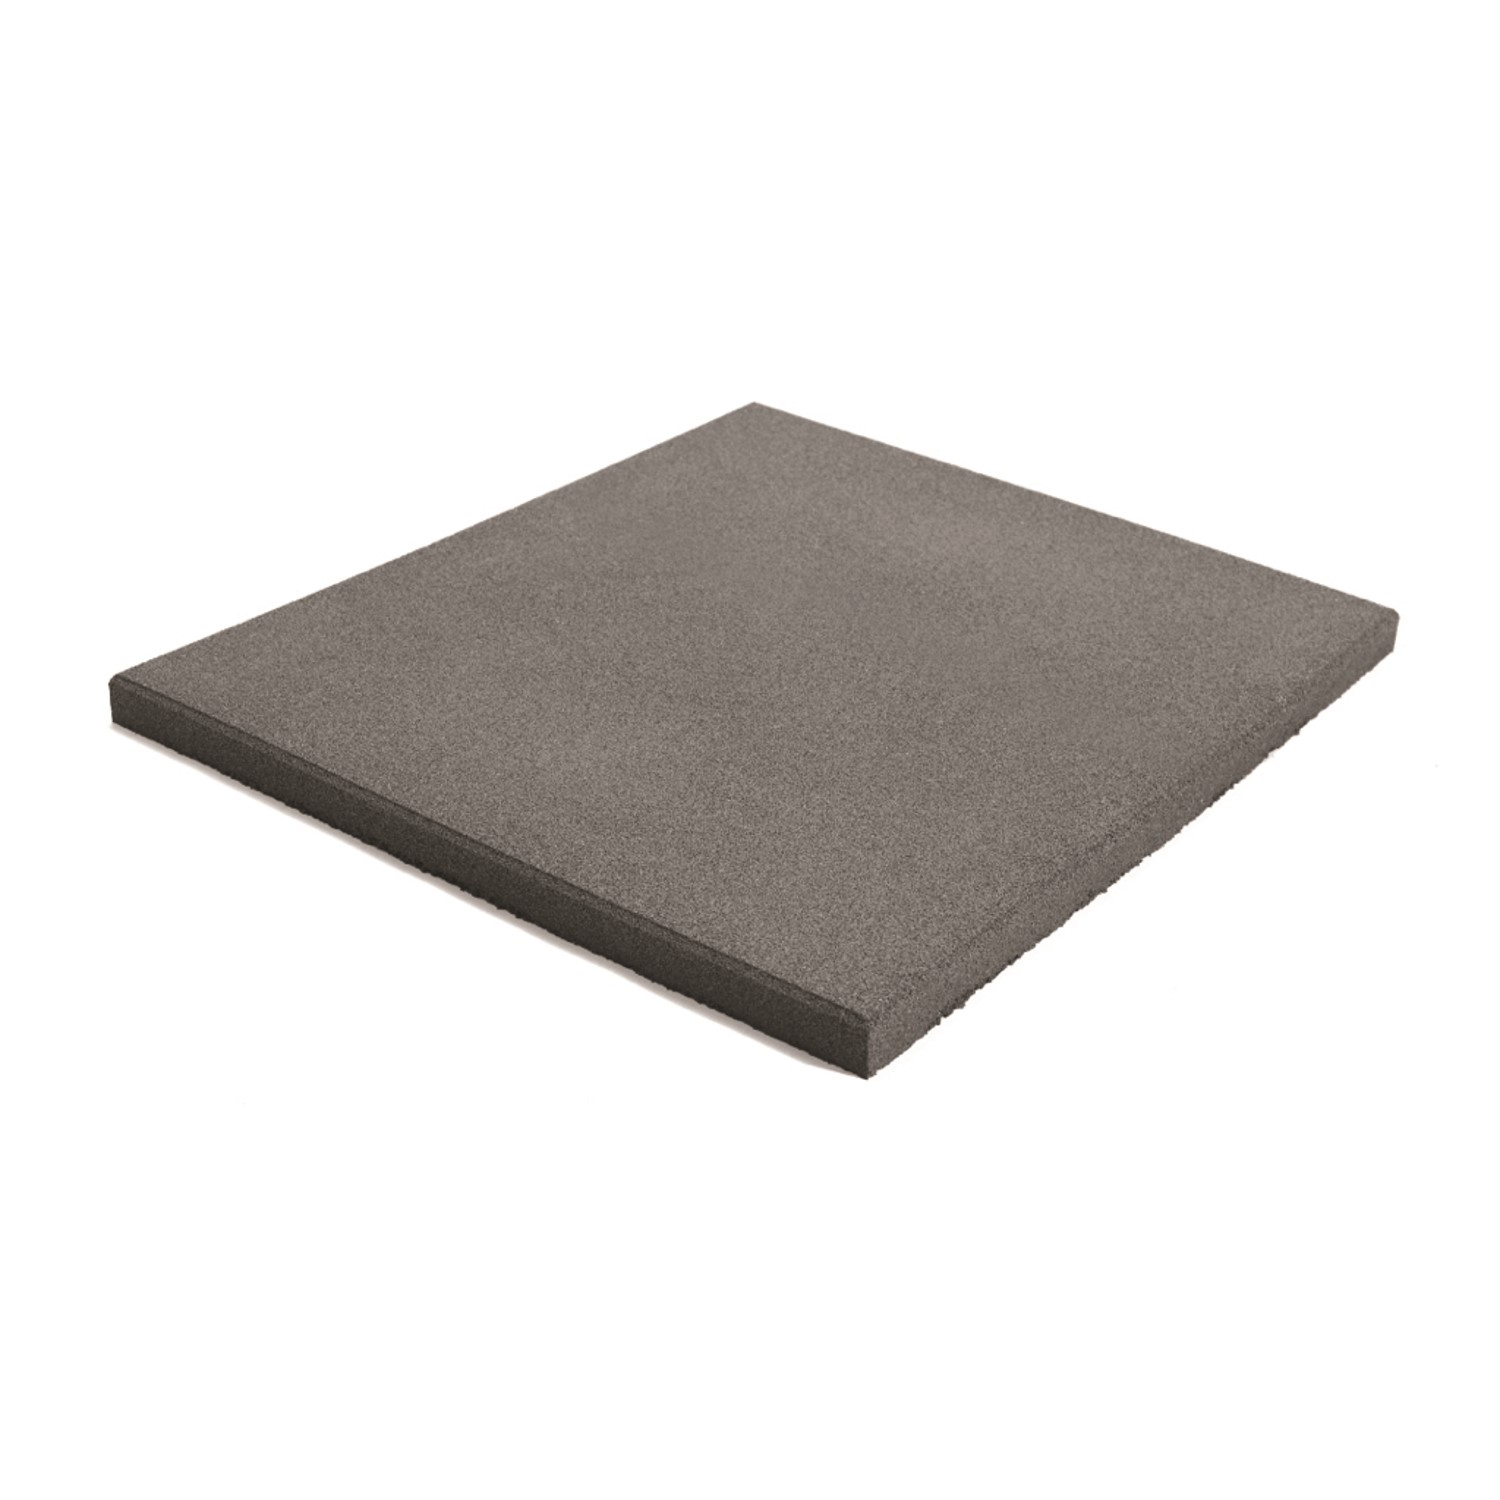 Jordan Activ Flooring (30mm) - Grey Tile